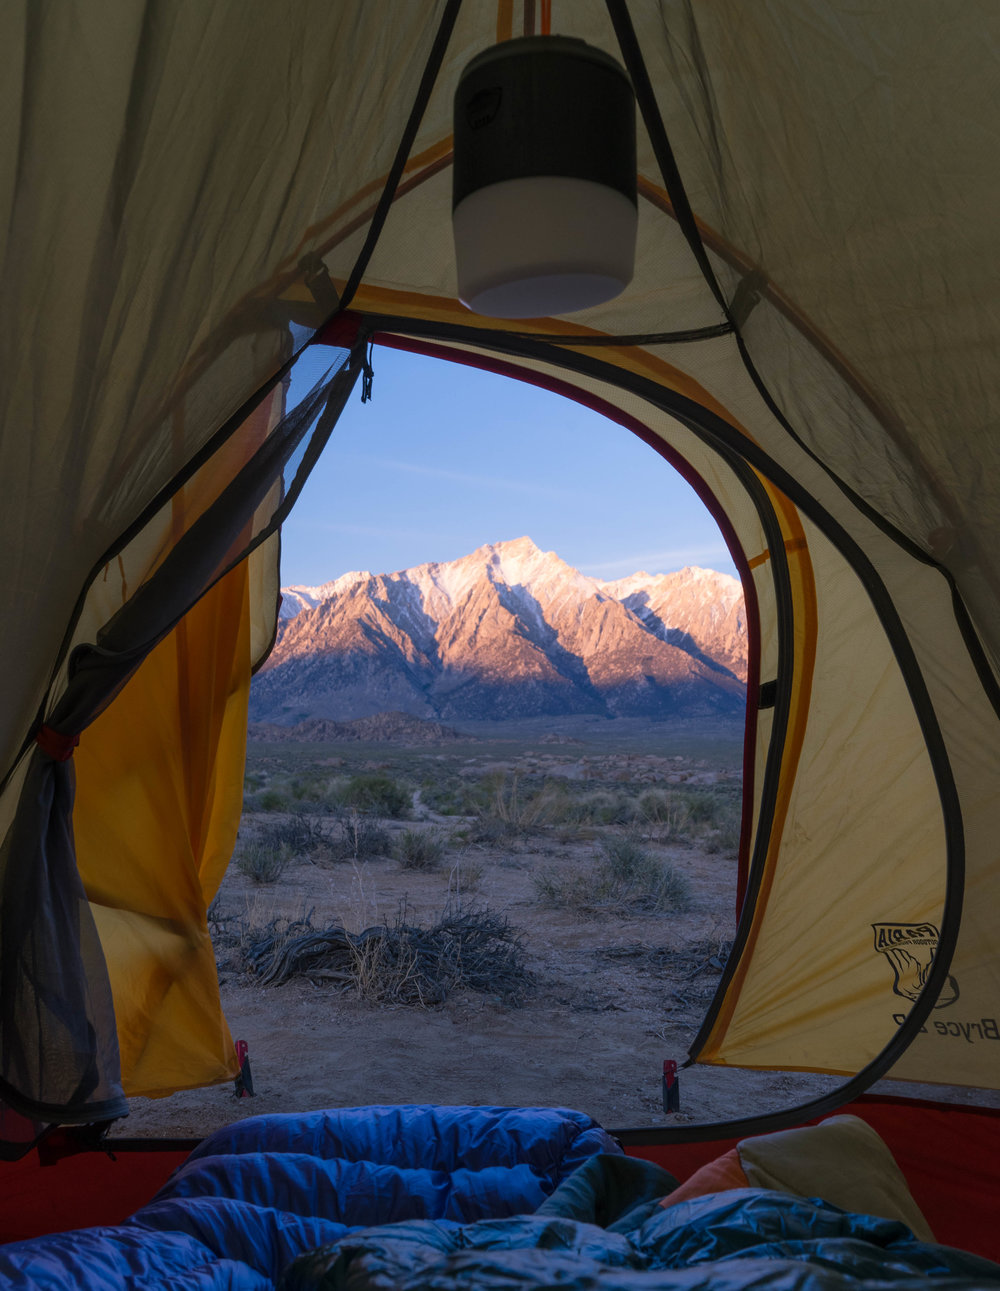 Sunrise view from the tent